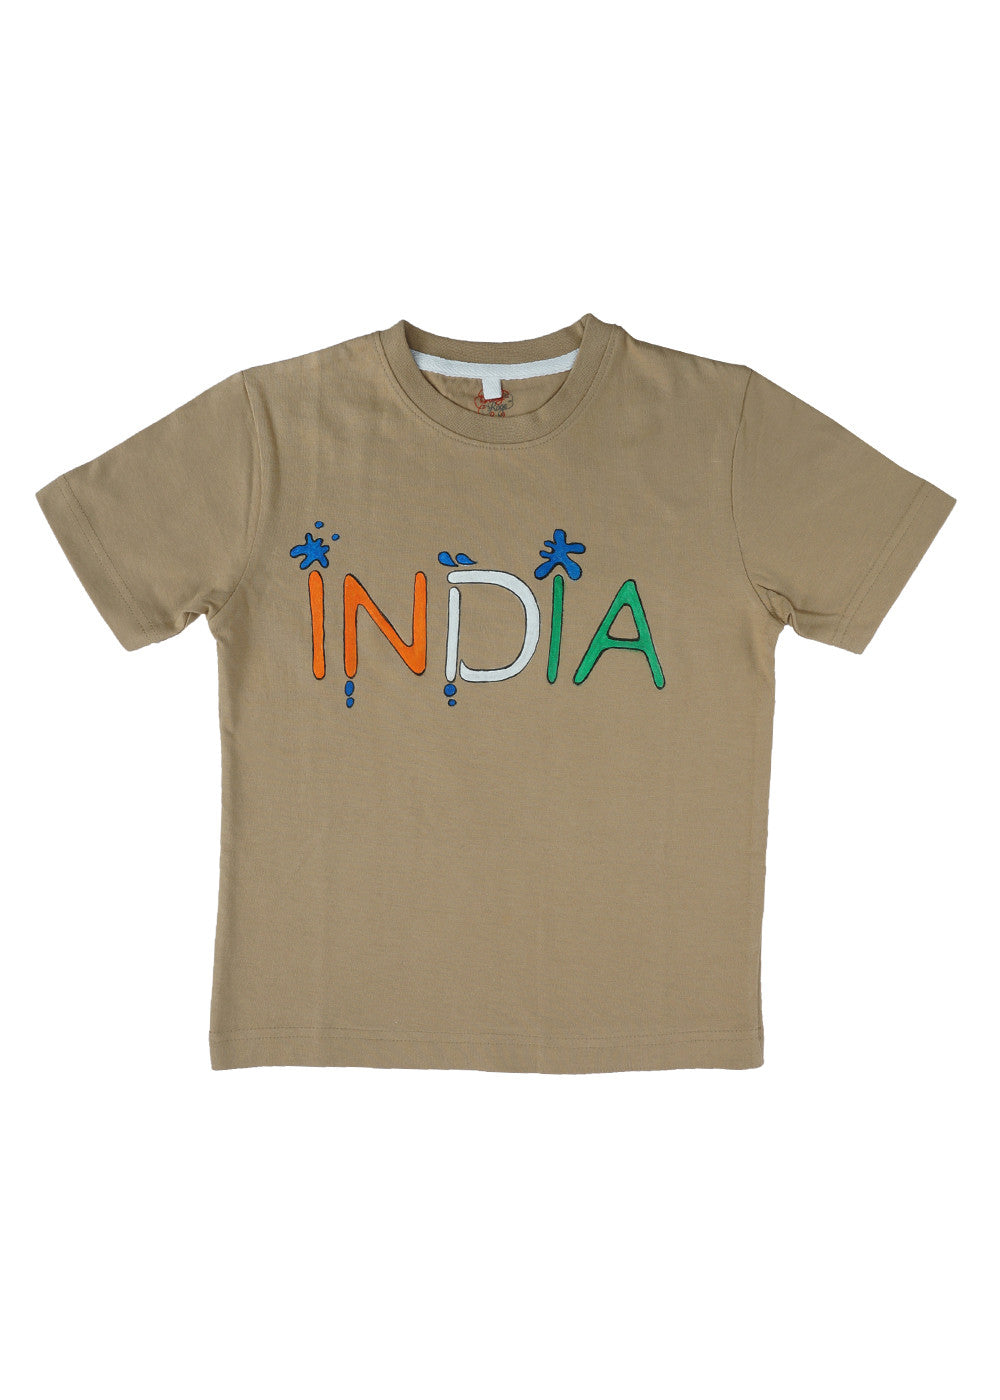 Hand-painted India T-shirt - RANGRAGE  - 1